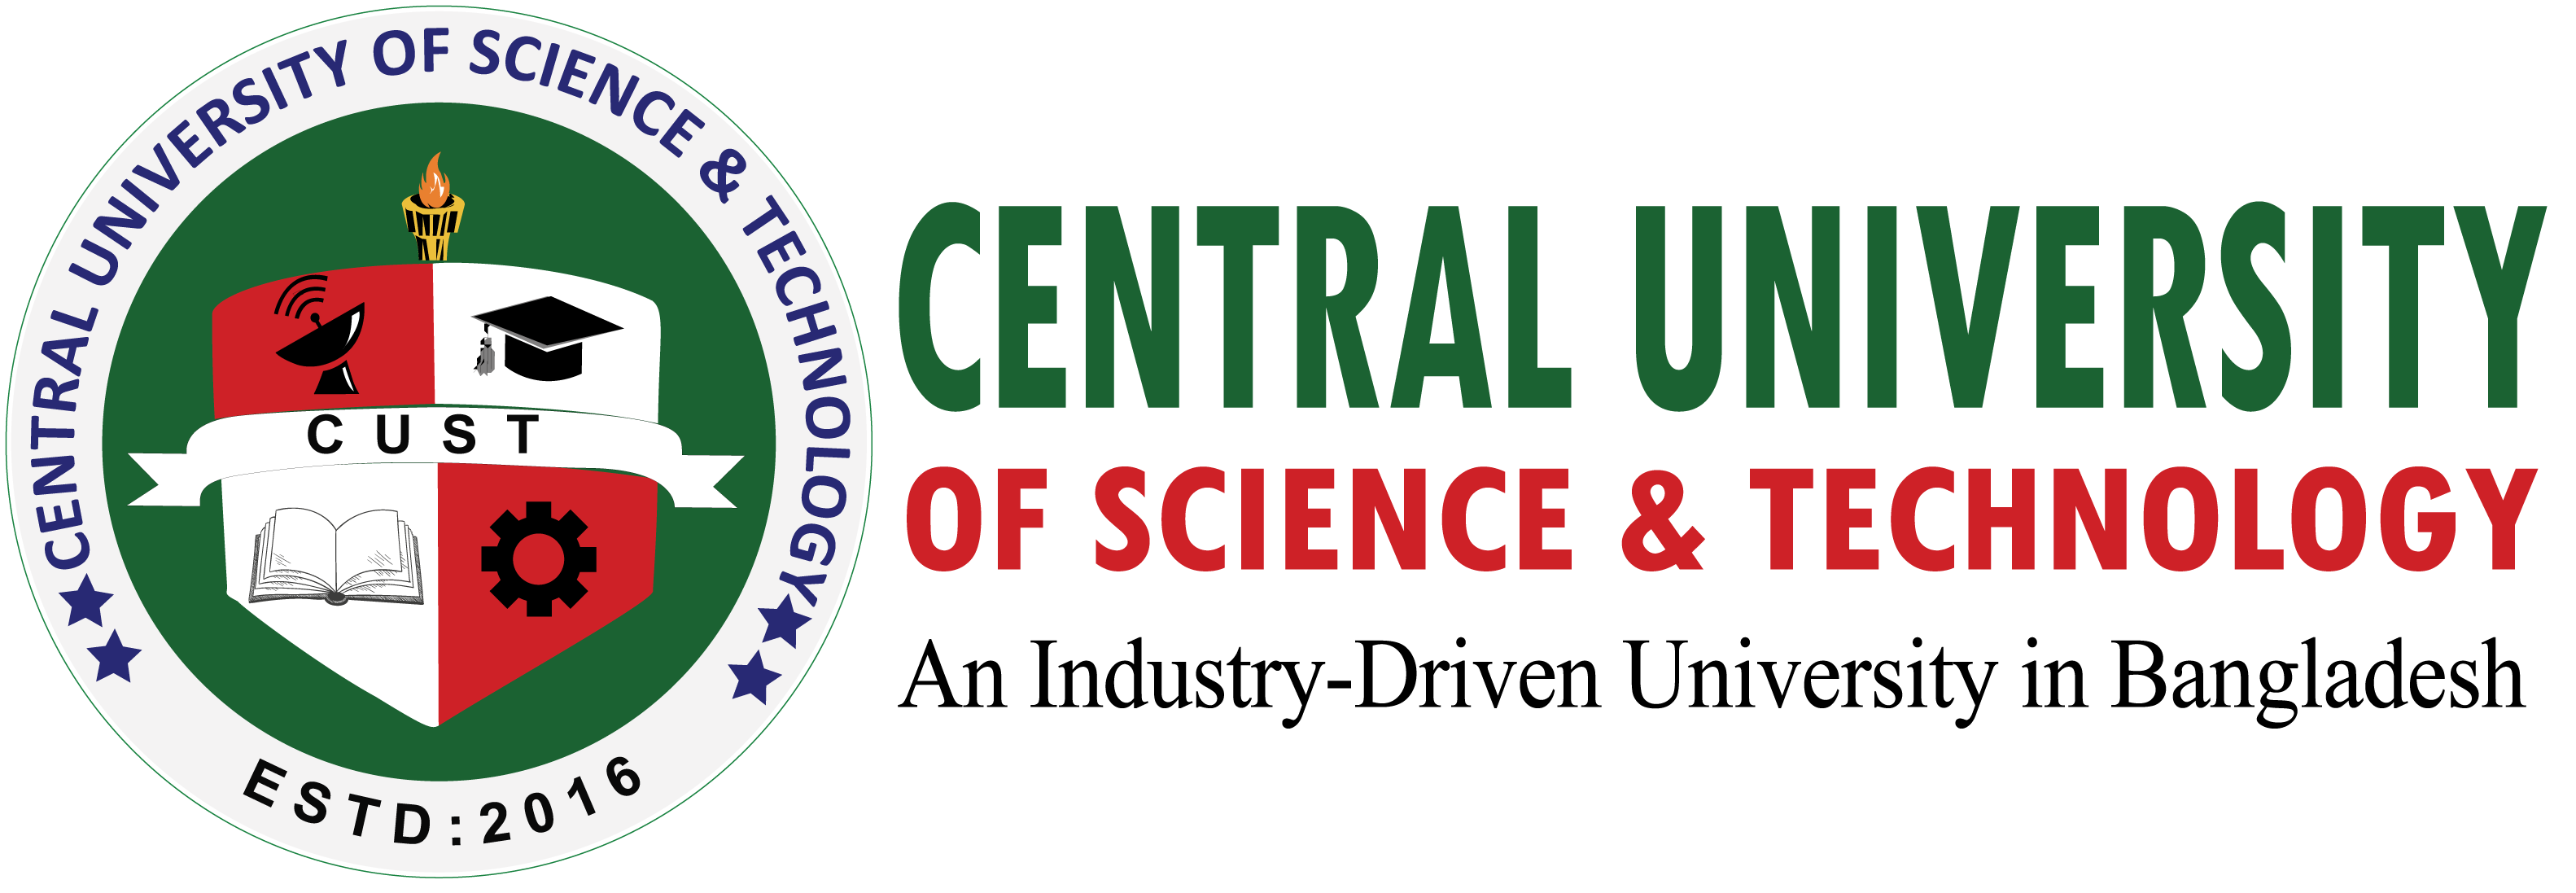 Schools of Computer Science & Information Technology - Central University of Science and Technology